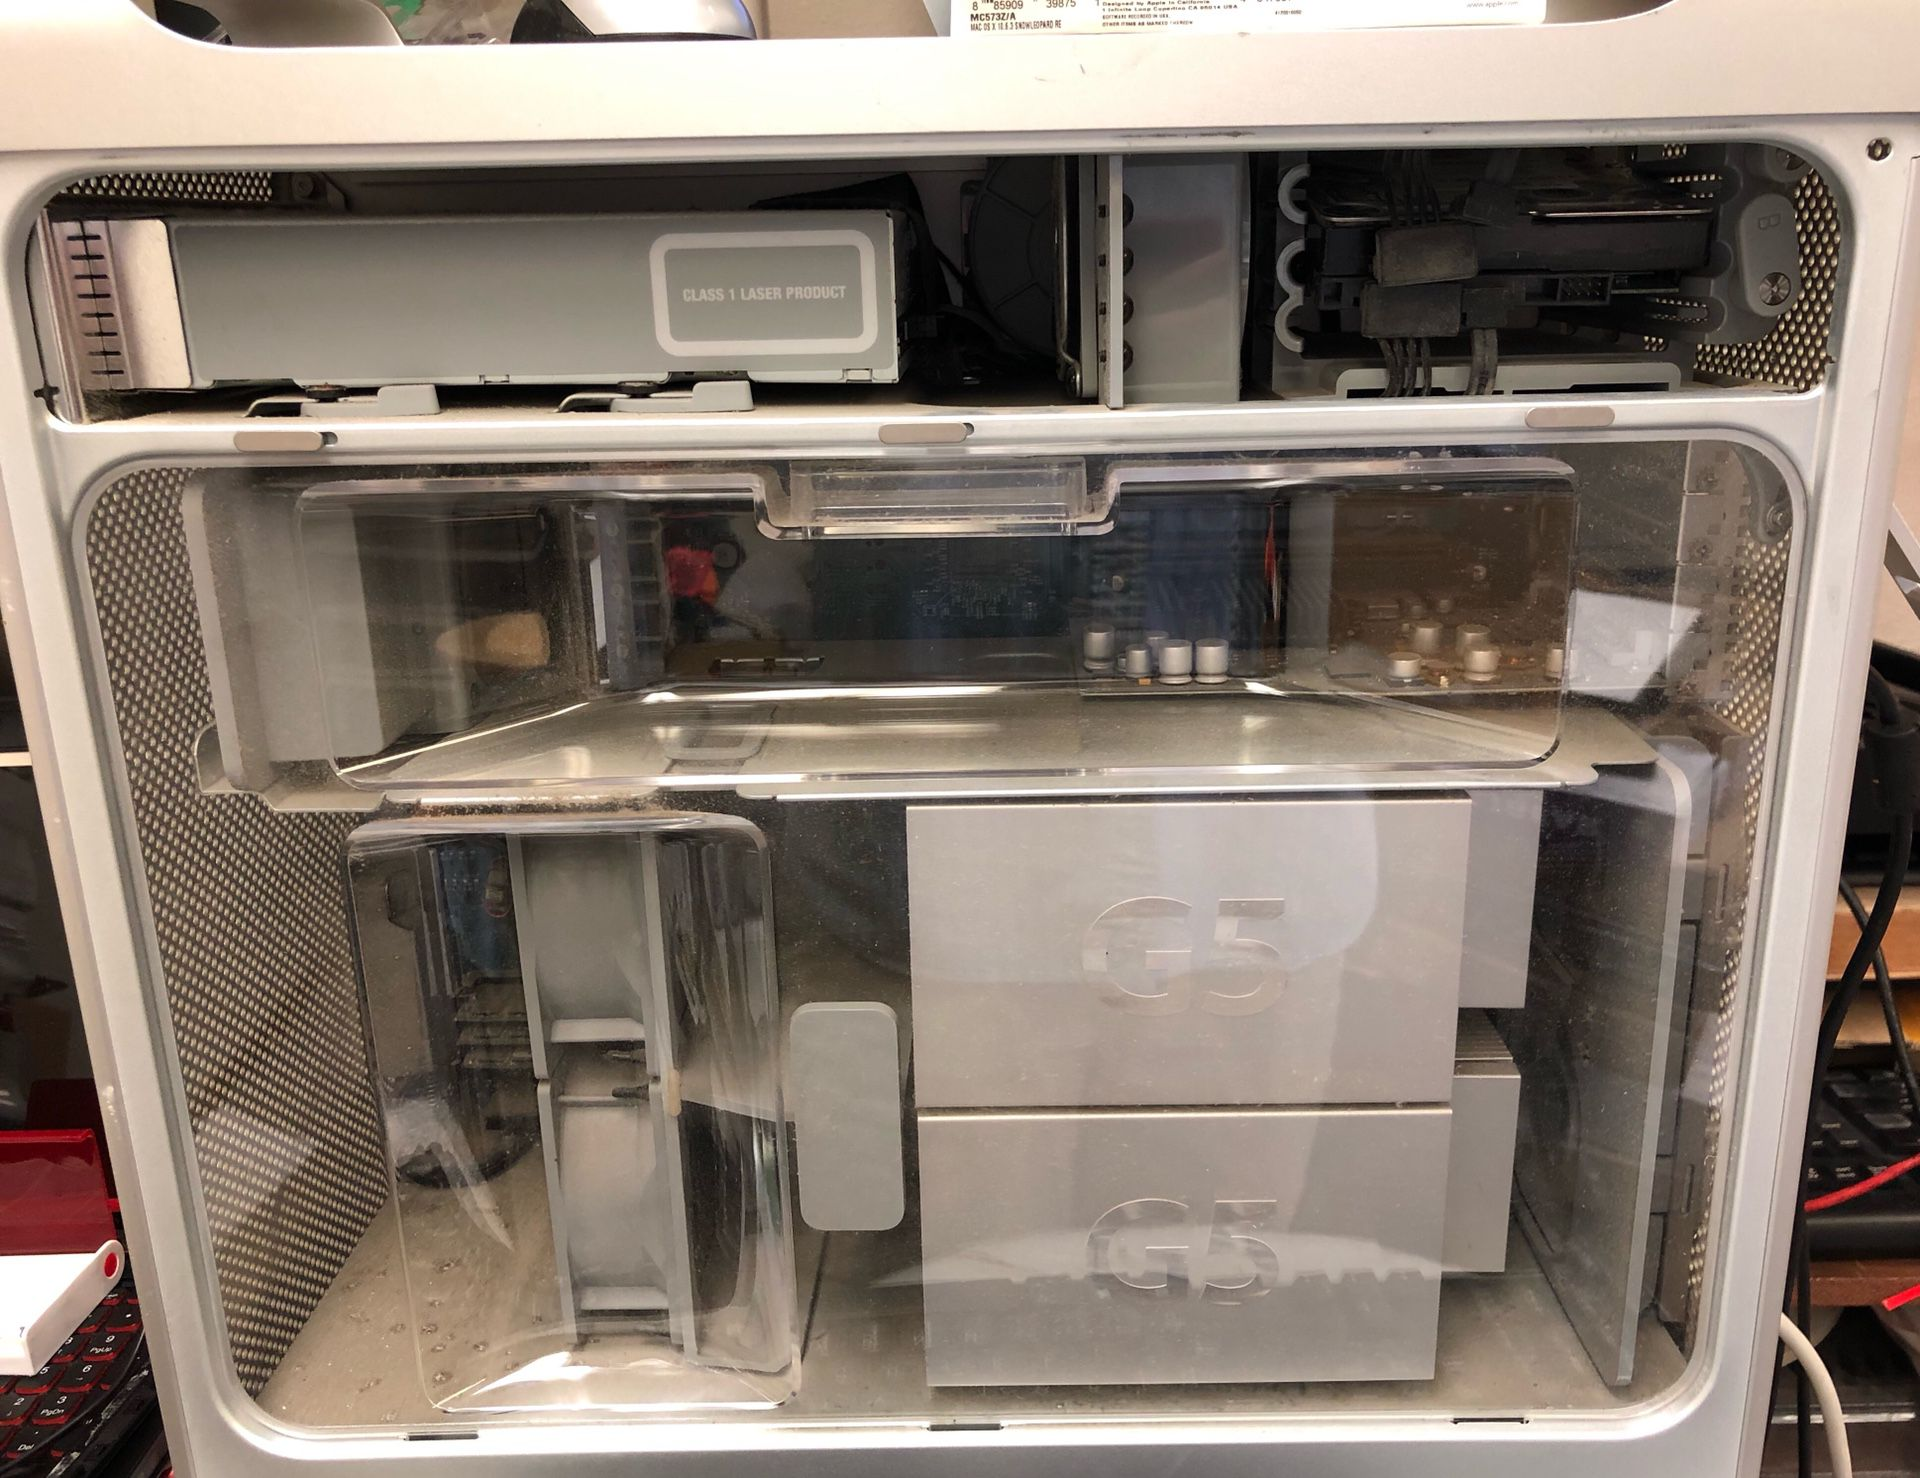 Mac G5 Tower OS X 5.9 Reload 750Gb HD 3Gb Memory Dual CPUs (2 CPUs) See Pics No Questions No Offers No Deals No Shipping No Support Cash & Carry